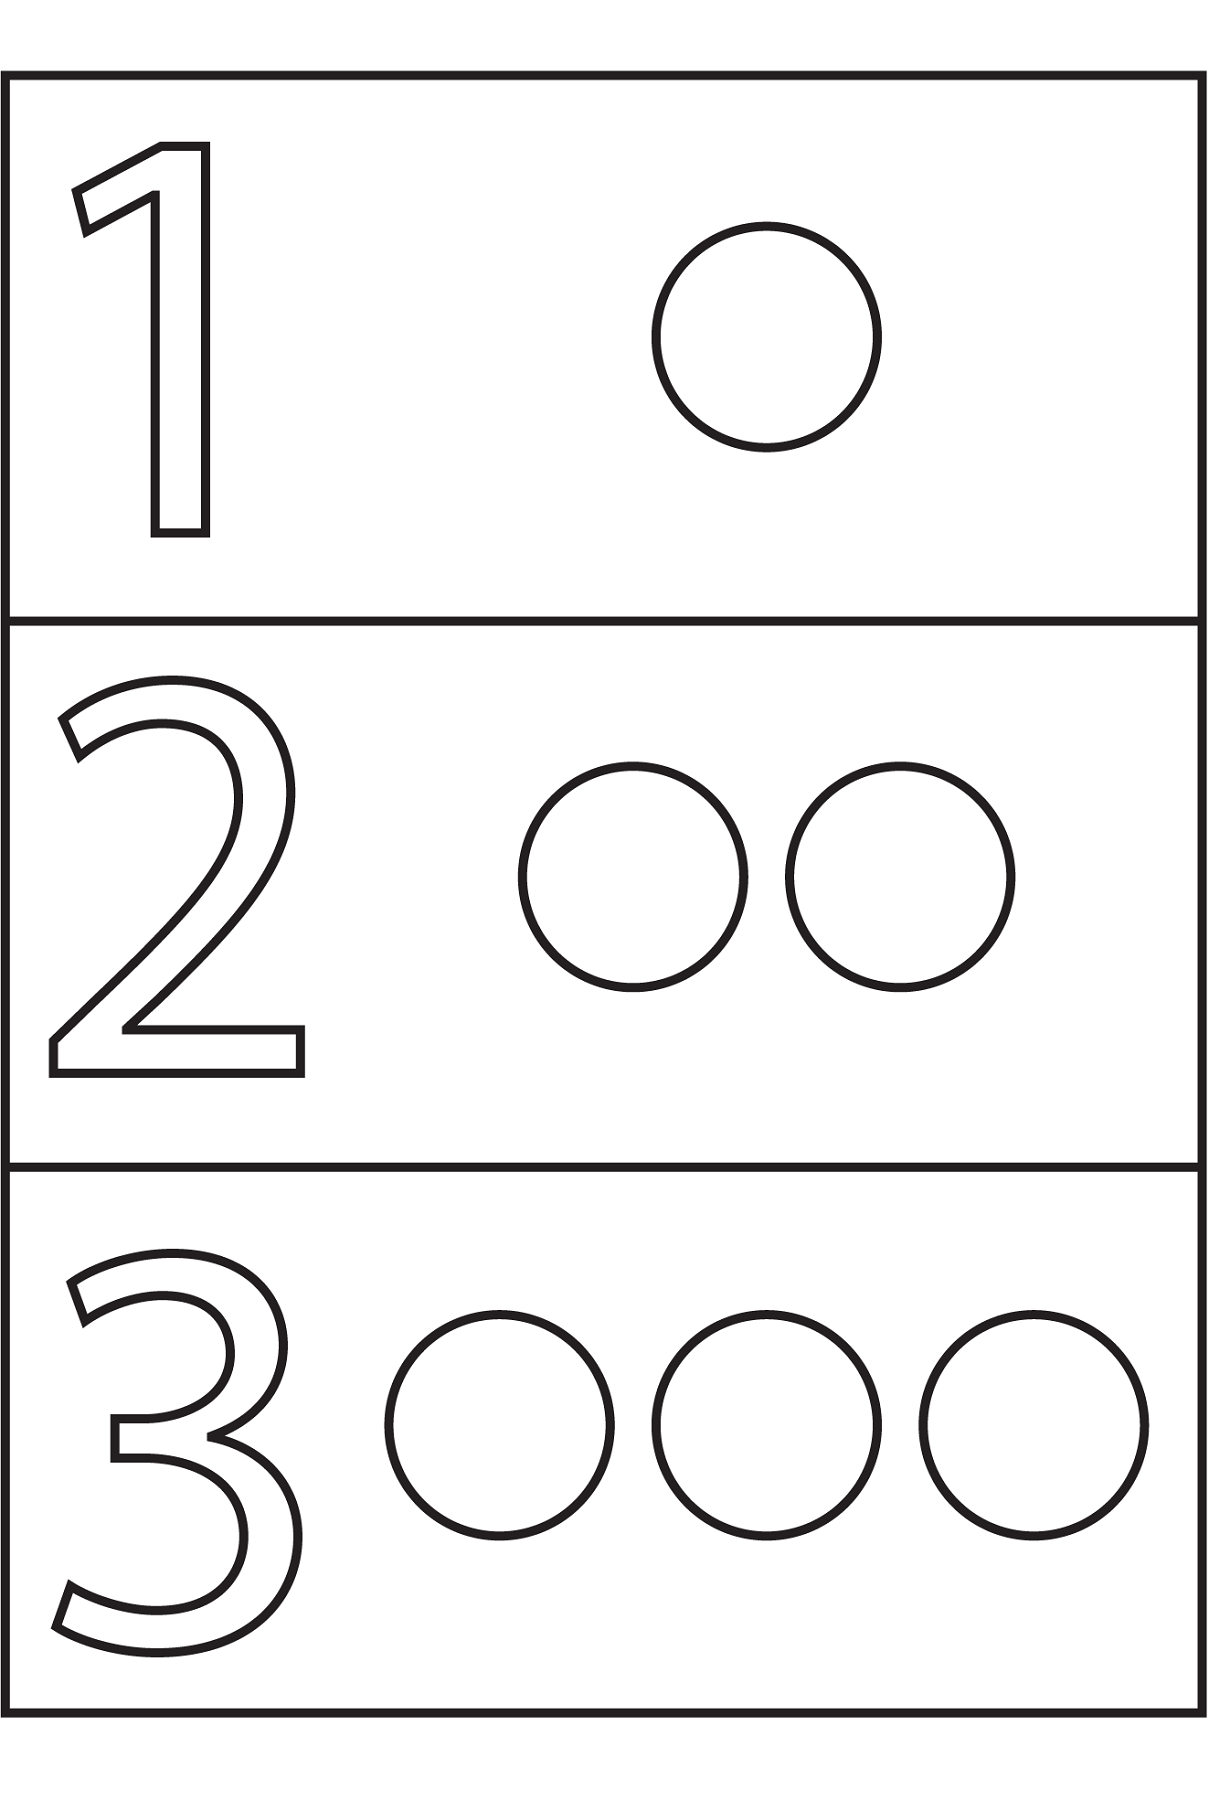 Shapes And Numbers Worksheets For Kids